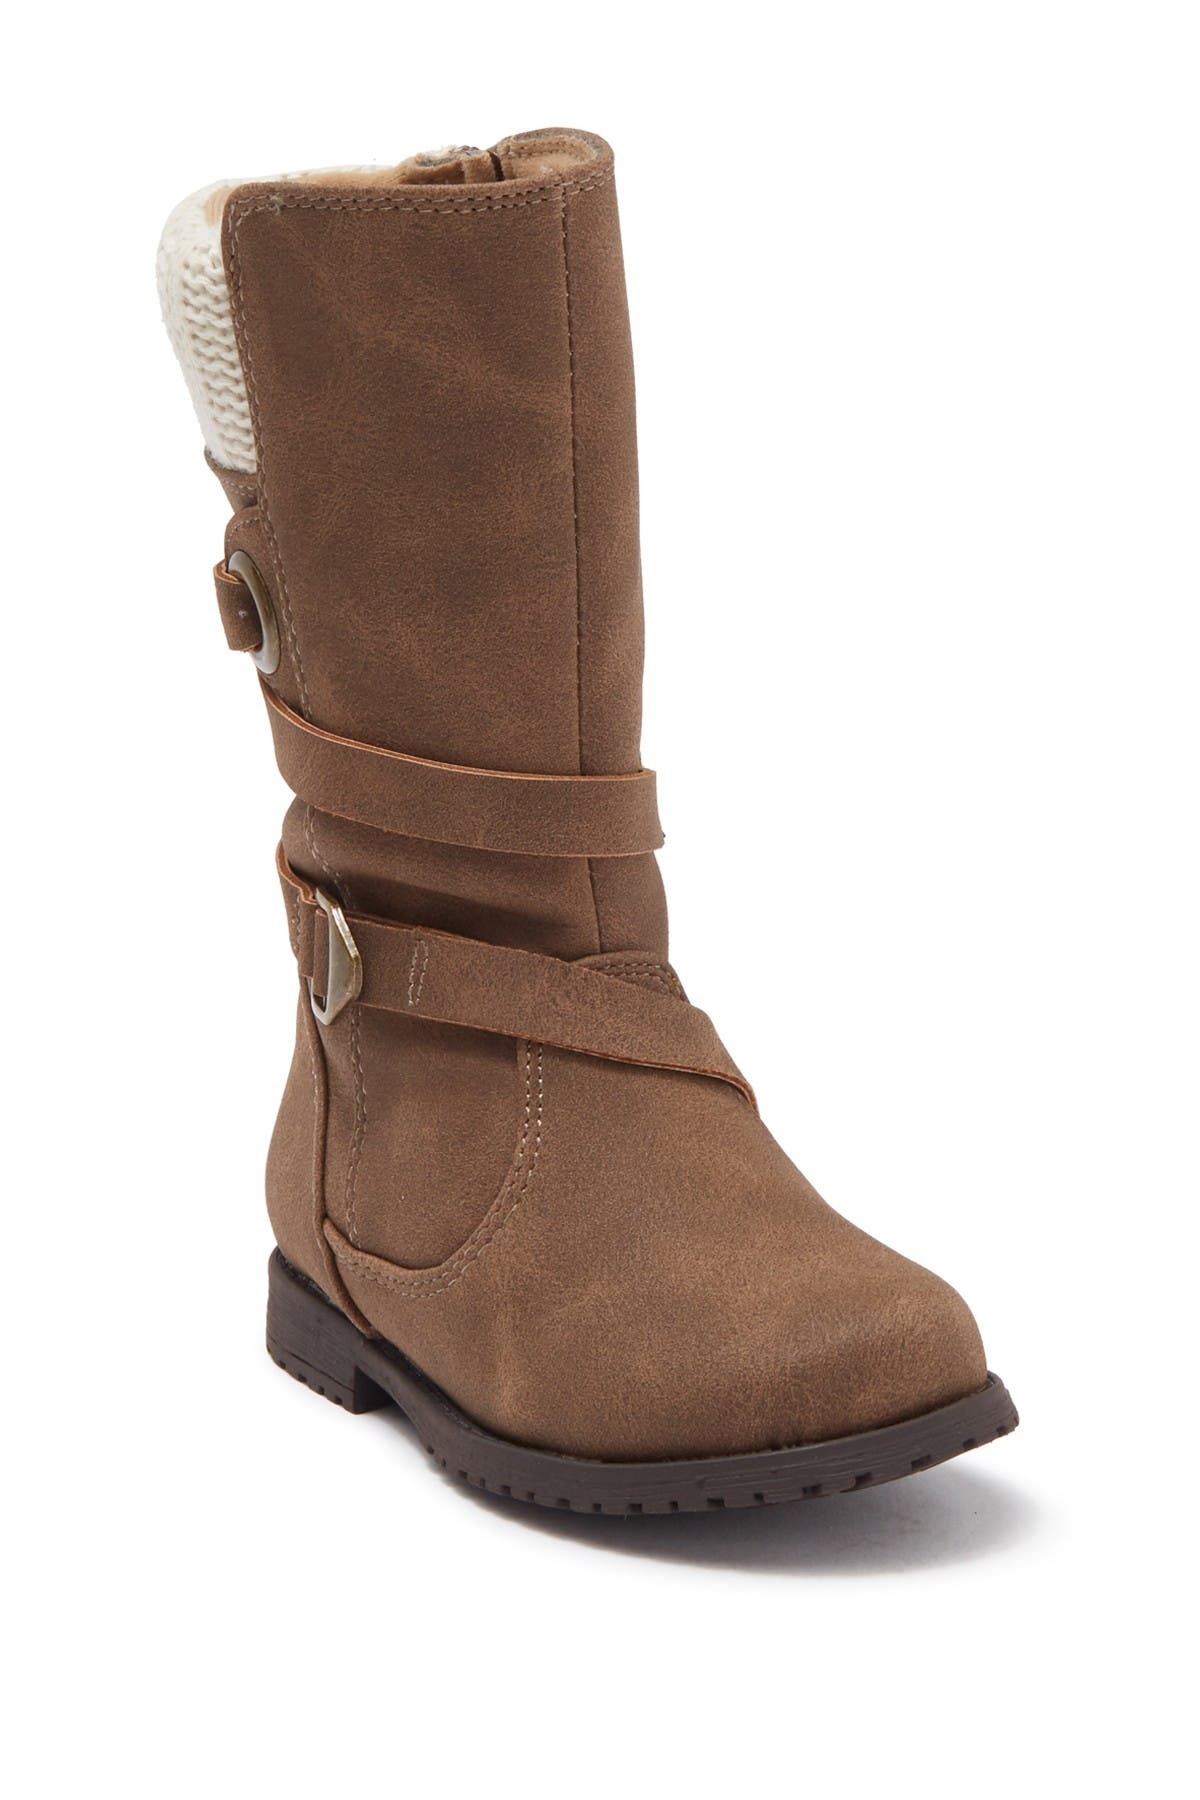 Image of Rachel Shoes Denv Knit Cuff Boot